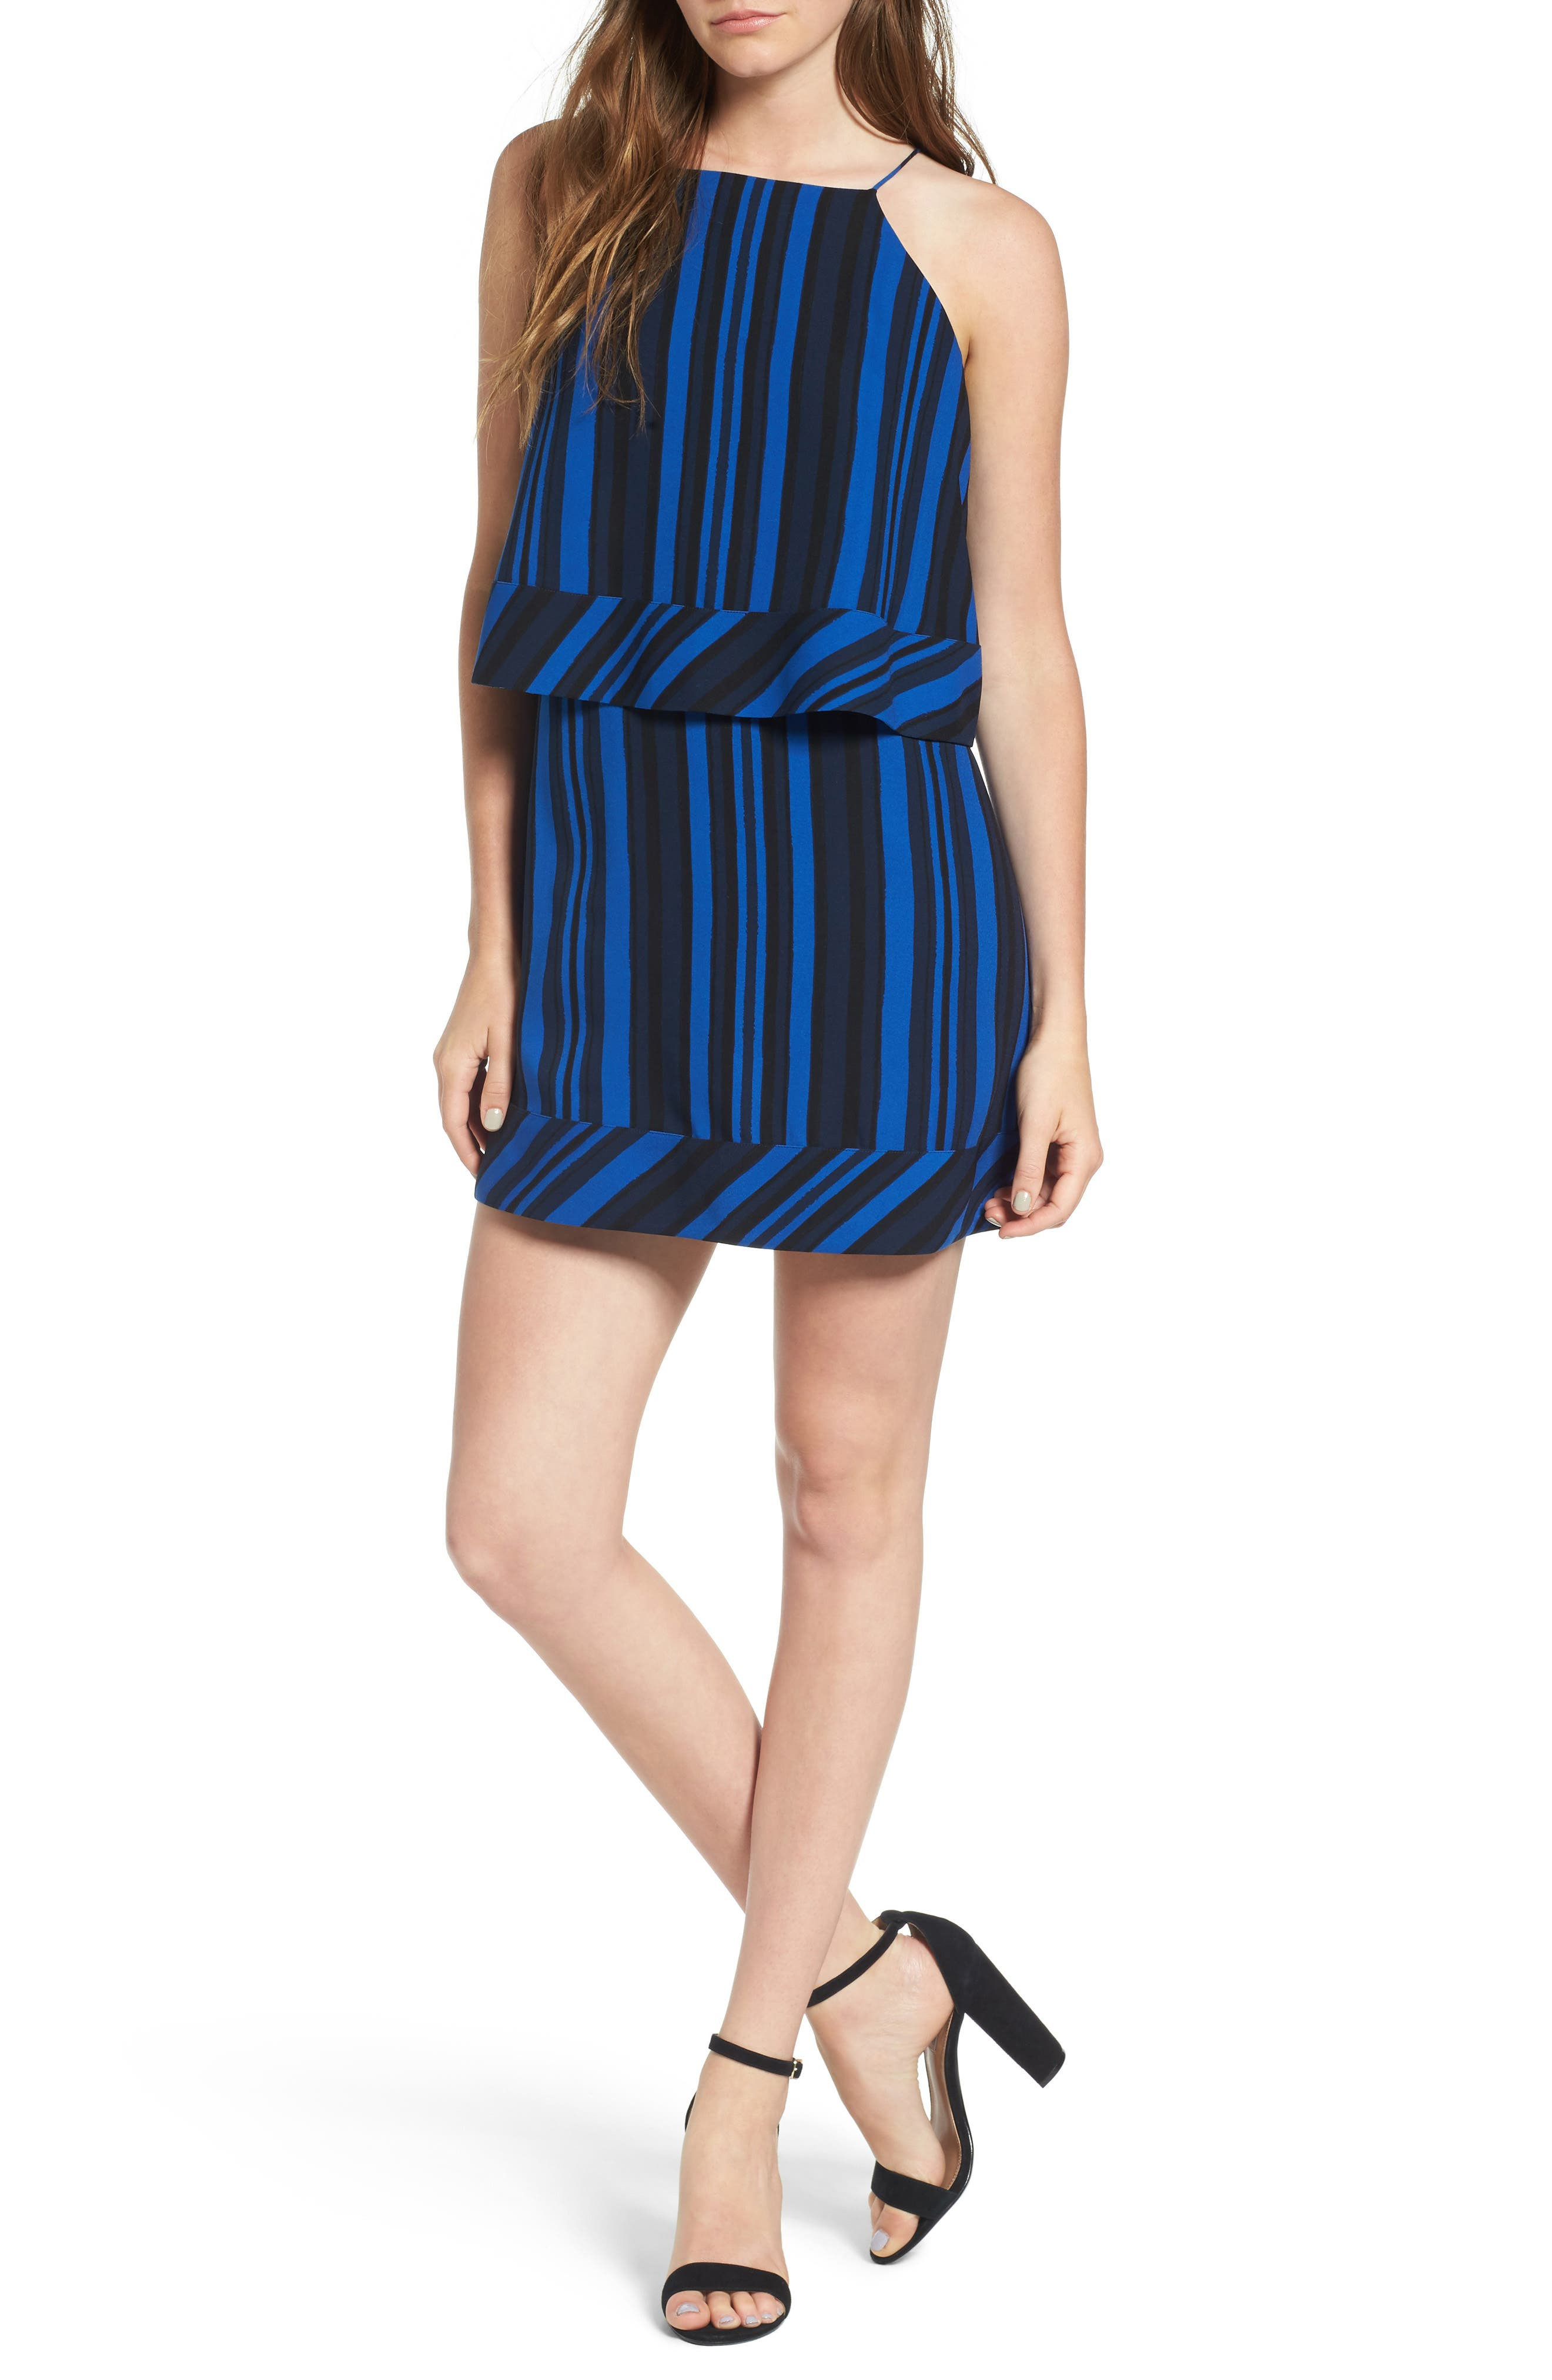 Main Image - cooper & ella Callie Tiered Shift Dress